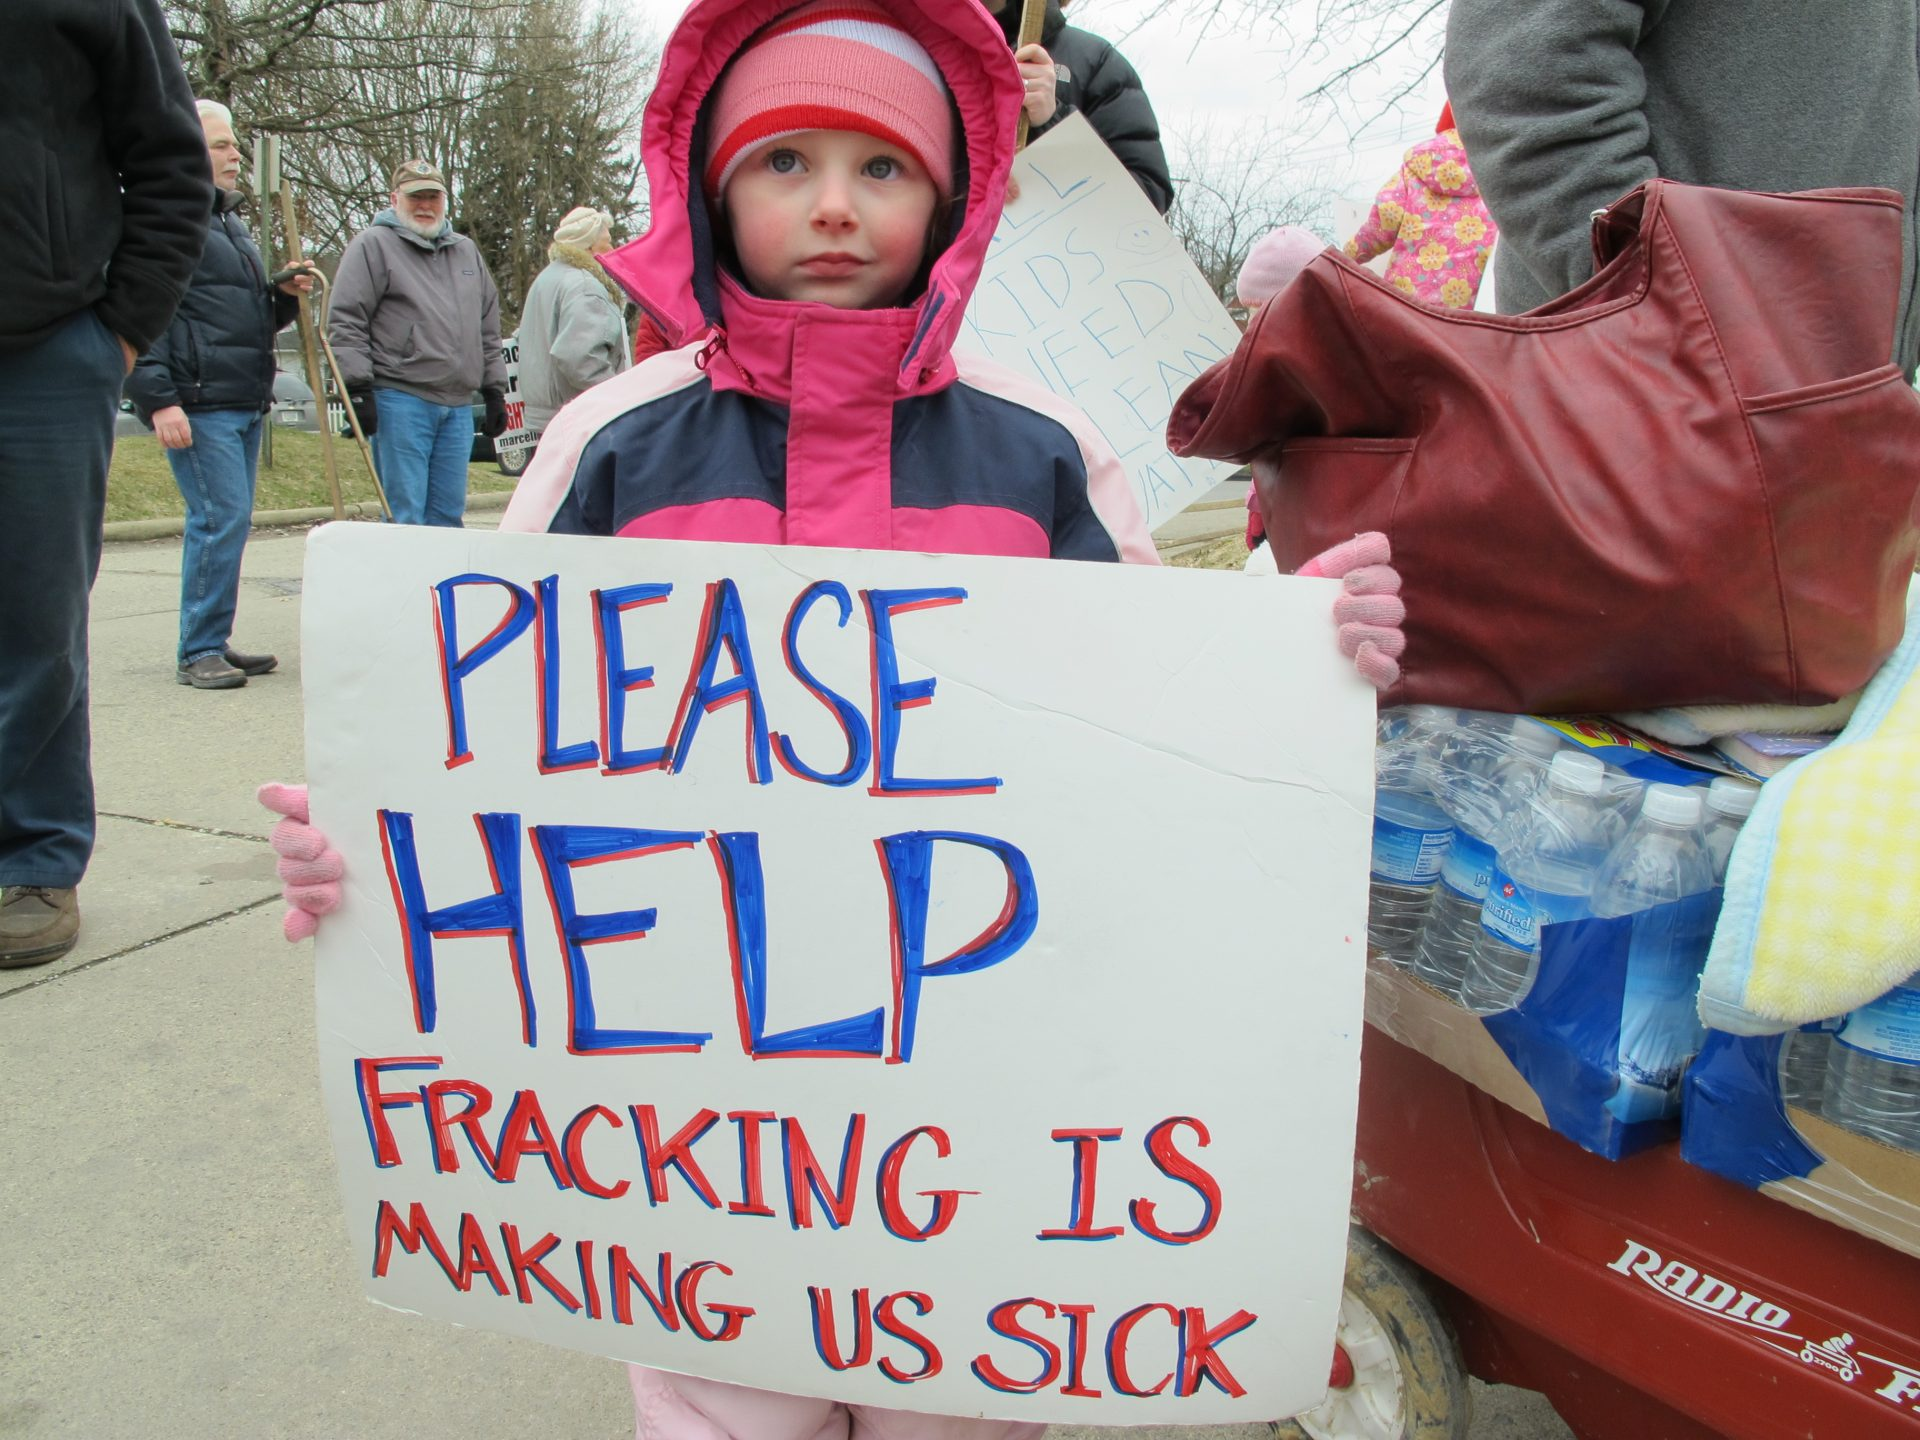 Pa. did not protect people from fracking dangers